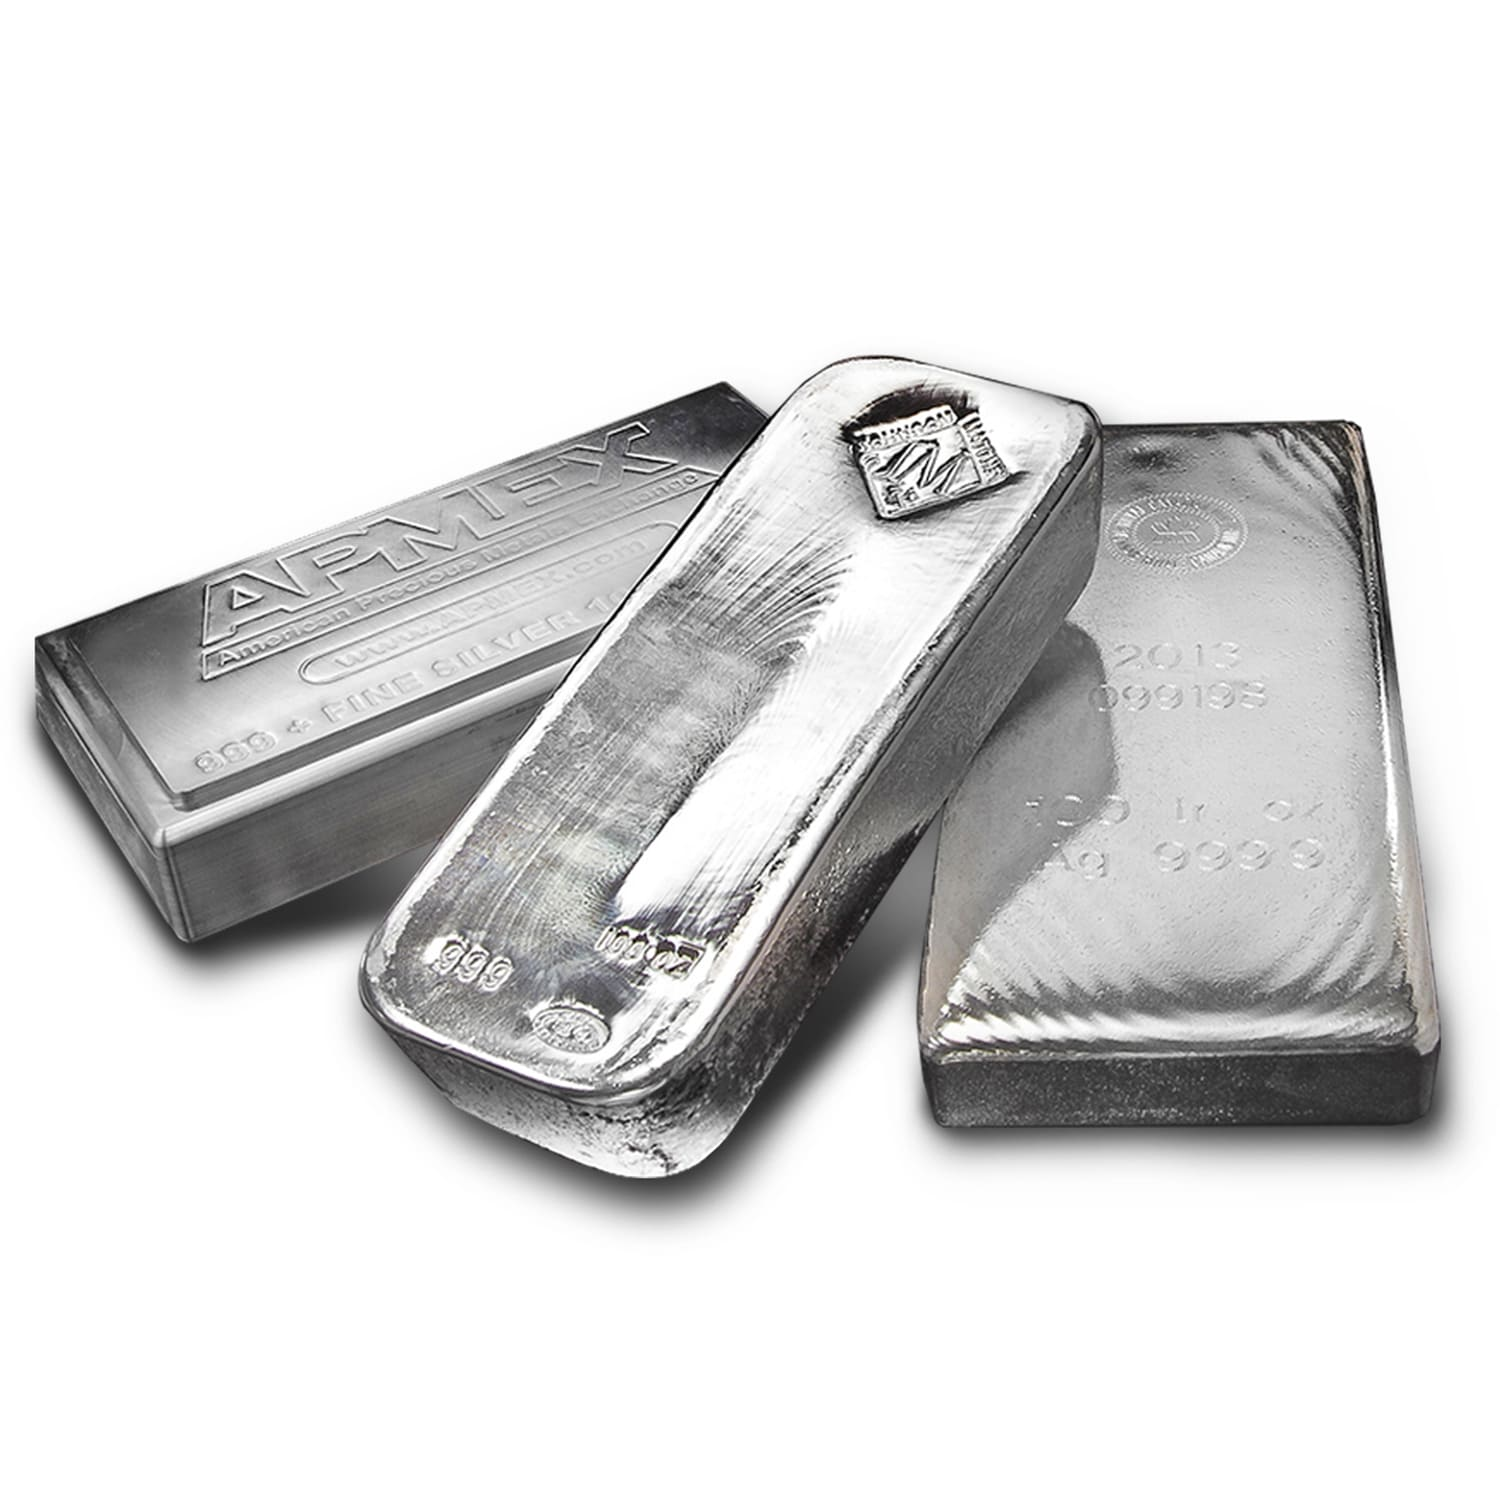 103.35 oz Silver Bars - Secondary Market